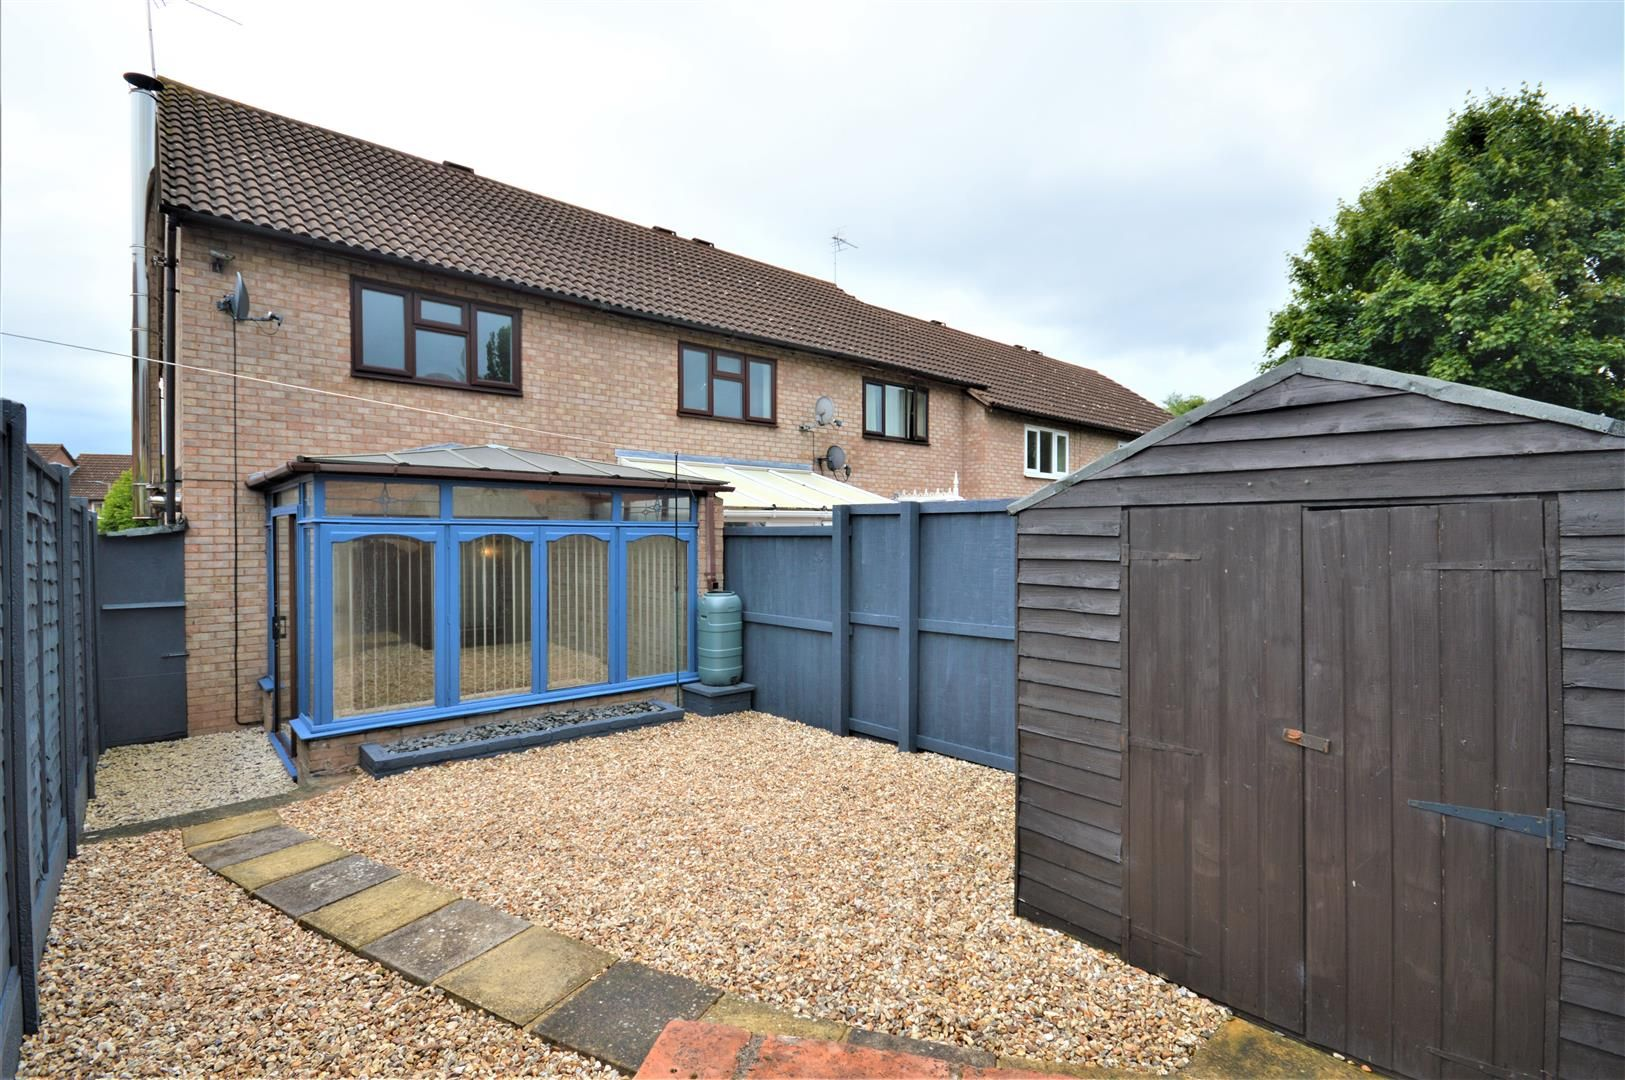 2 bed end-of-terrace for sale in Belmont  - Property Image 11